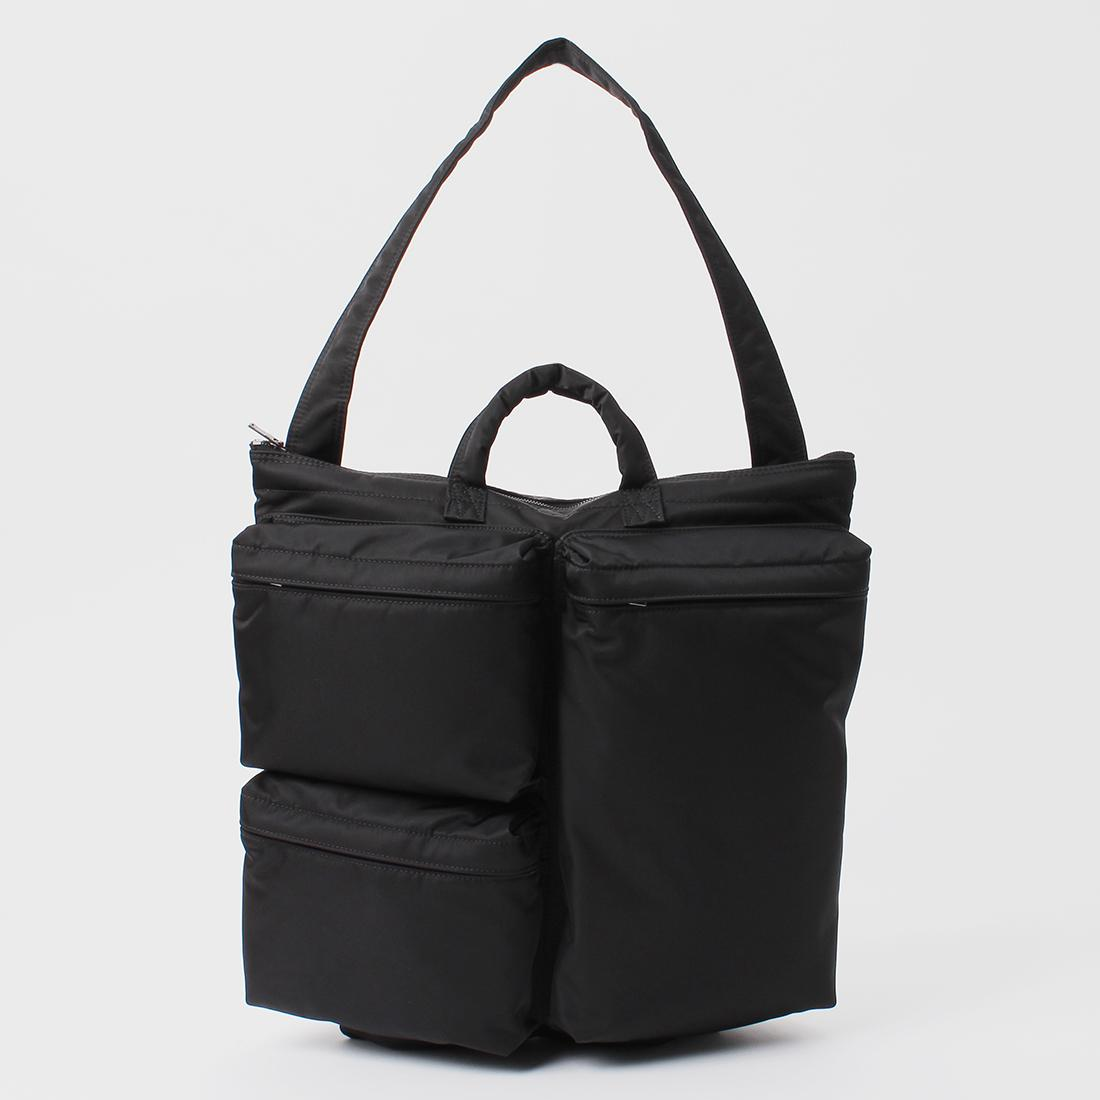 Helmet Bag 1225580: Black